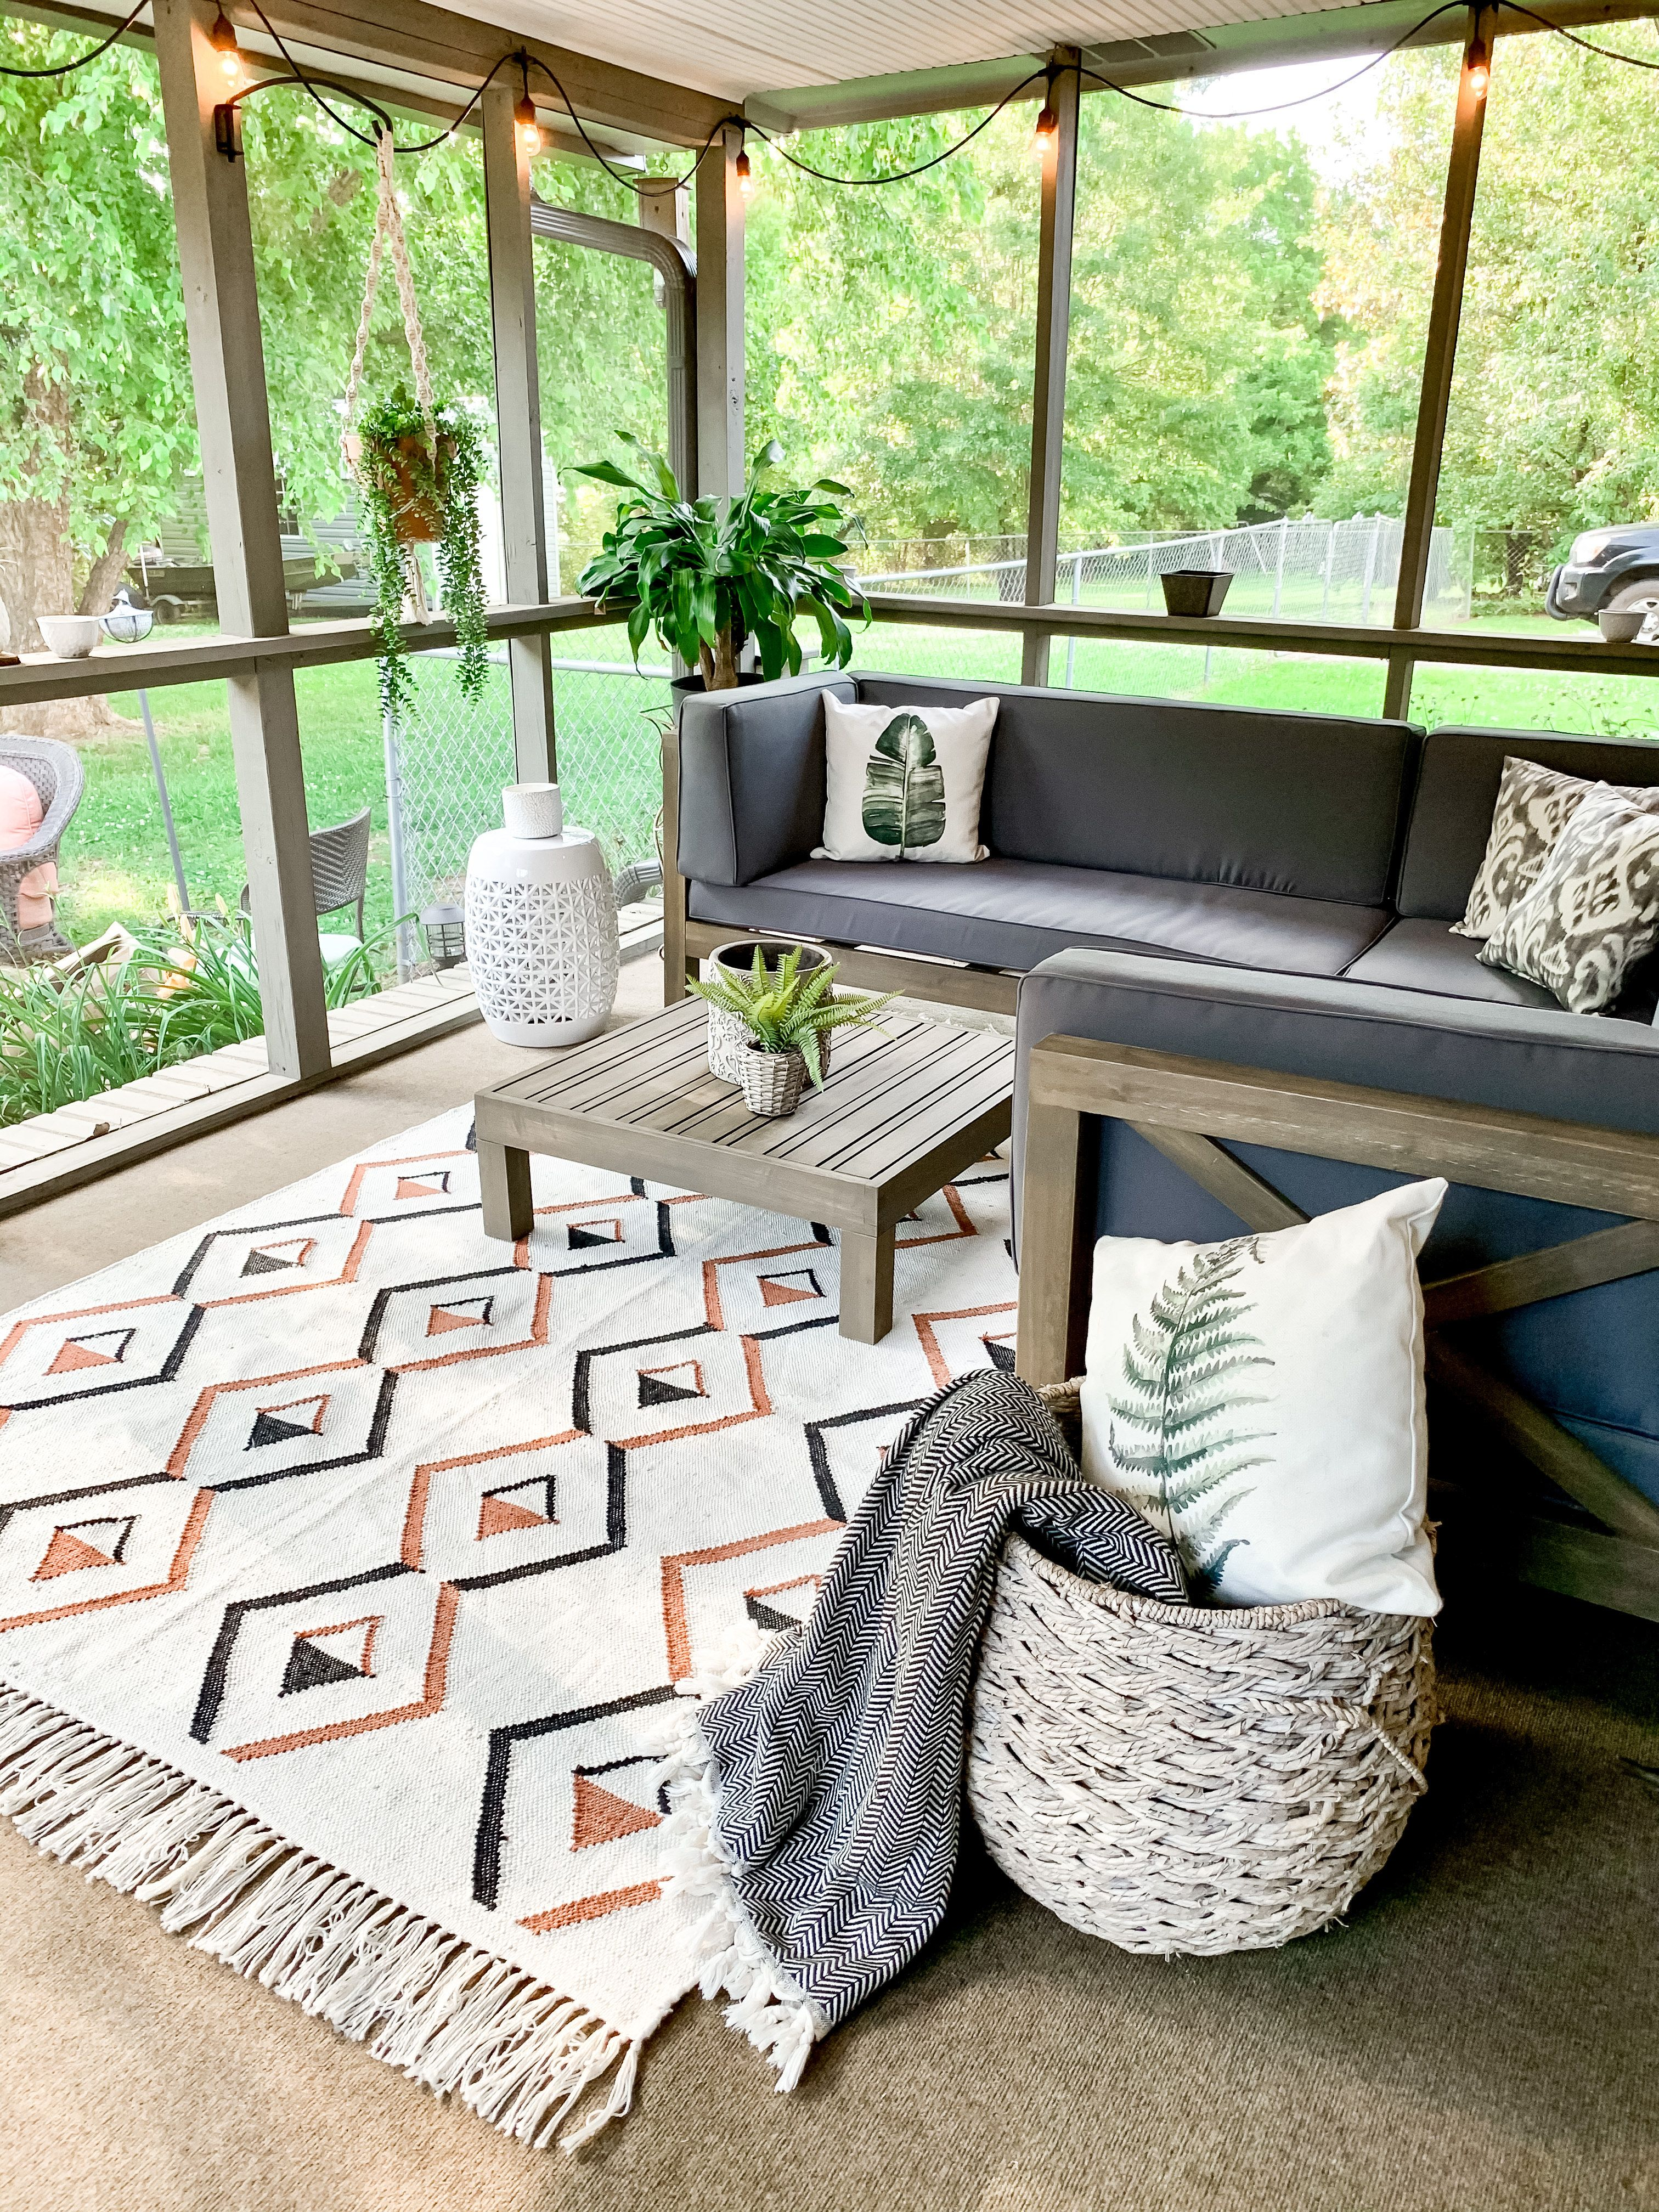 Decorate your patios with our handmade indoor outdoor washable rugs. Our Sarah rug is eco friendly and soft underfoot & affordable.   #cozyinteriors #cozydecor #summer #patioinspiration #diypatio #designforpatio #patioinspo #summer #indooroutdoorrug #outdoorrug #hyggehome #medidatingroom #calmexteriors